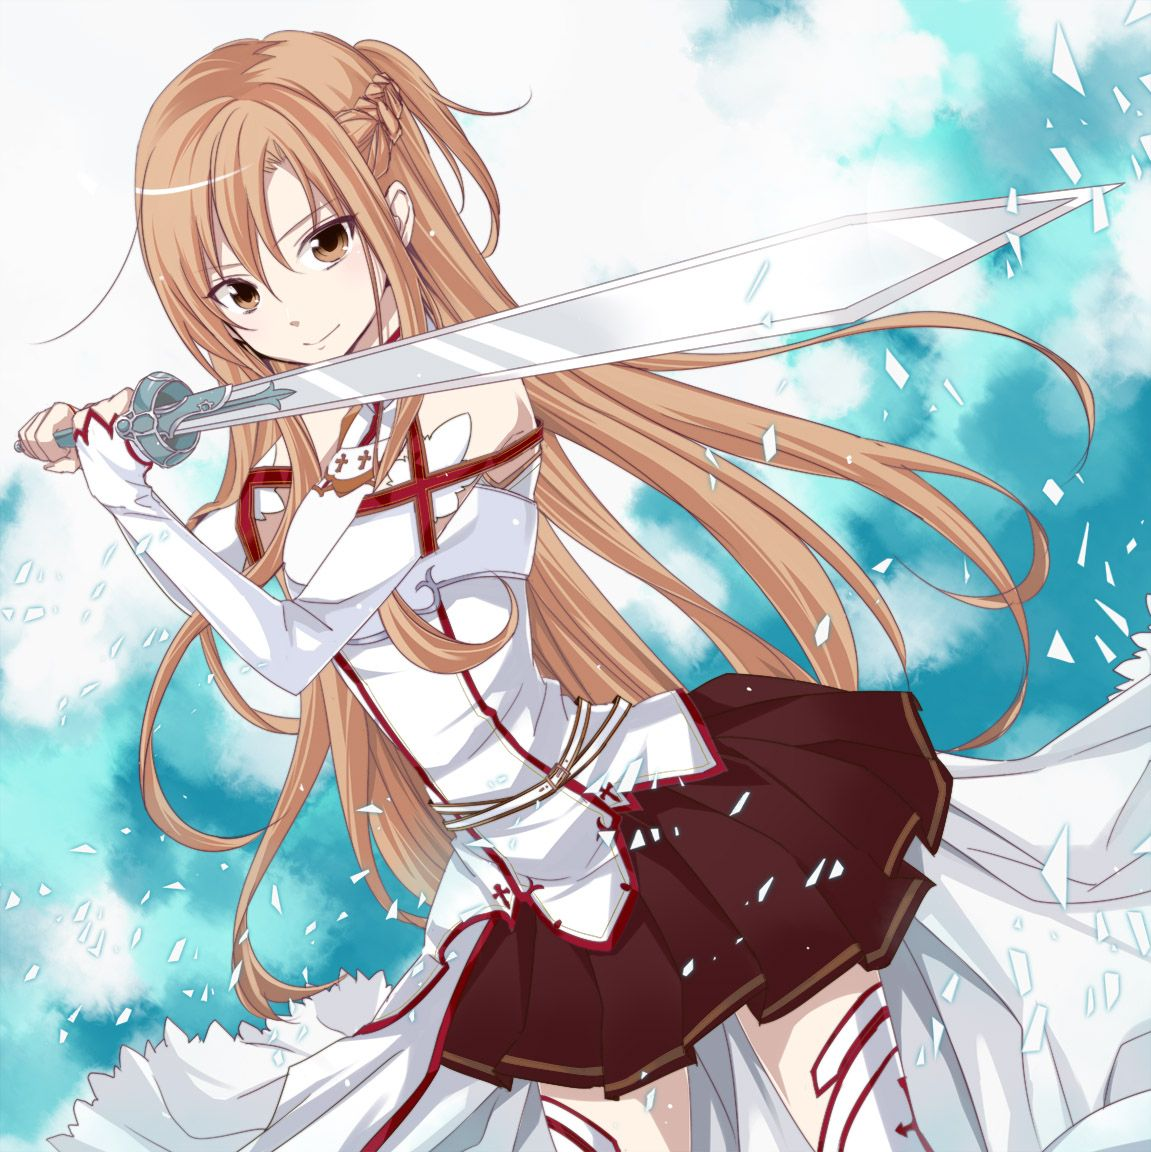 Asuna, my favorite female anime character (Sword Art